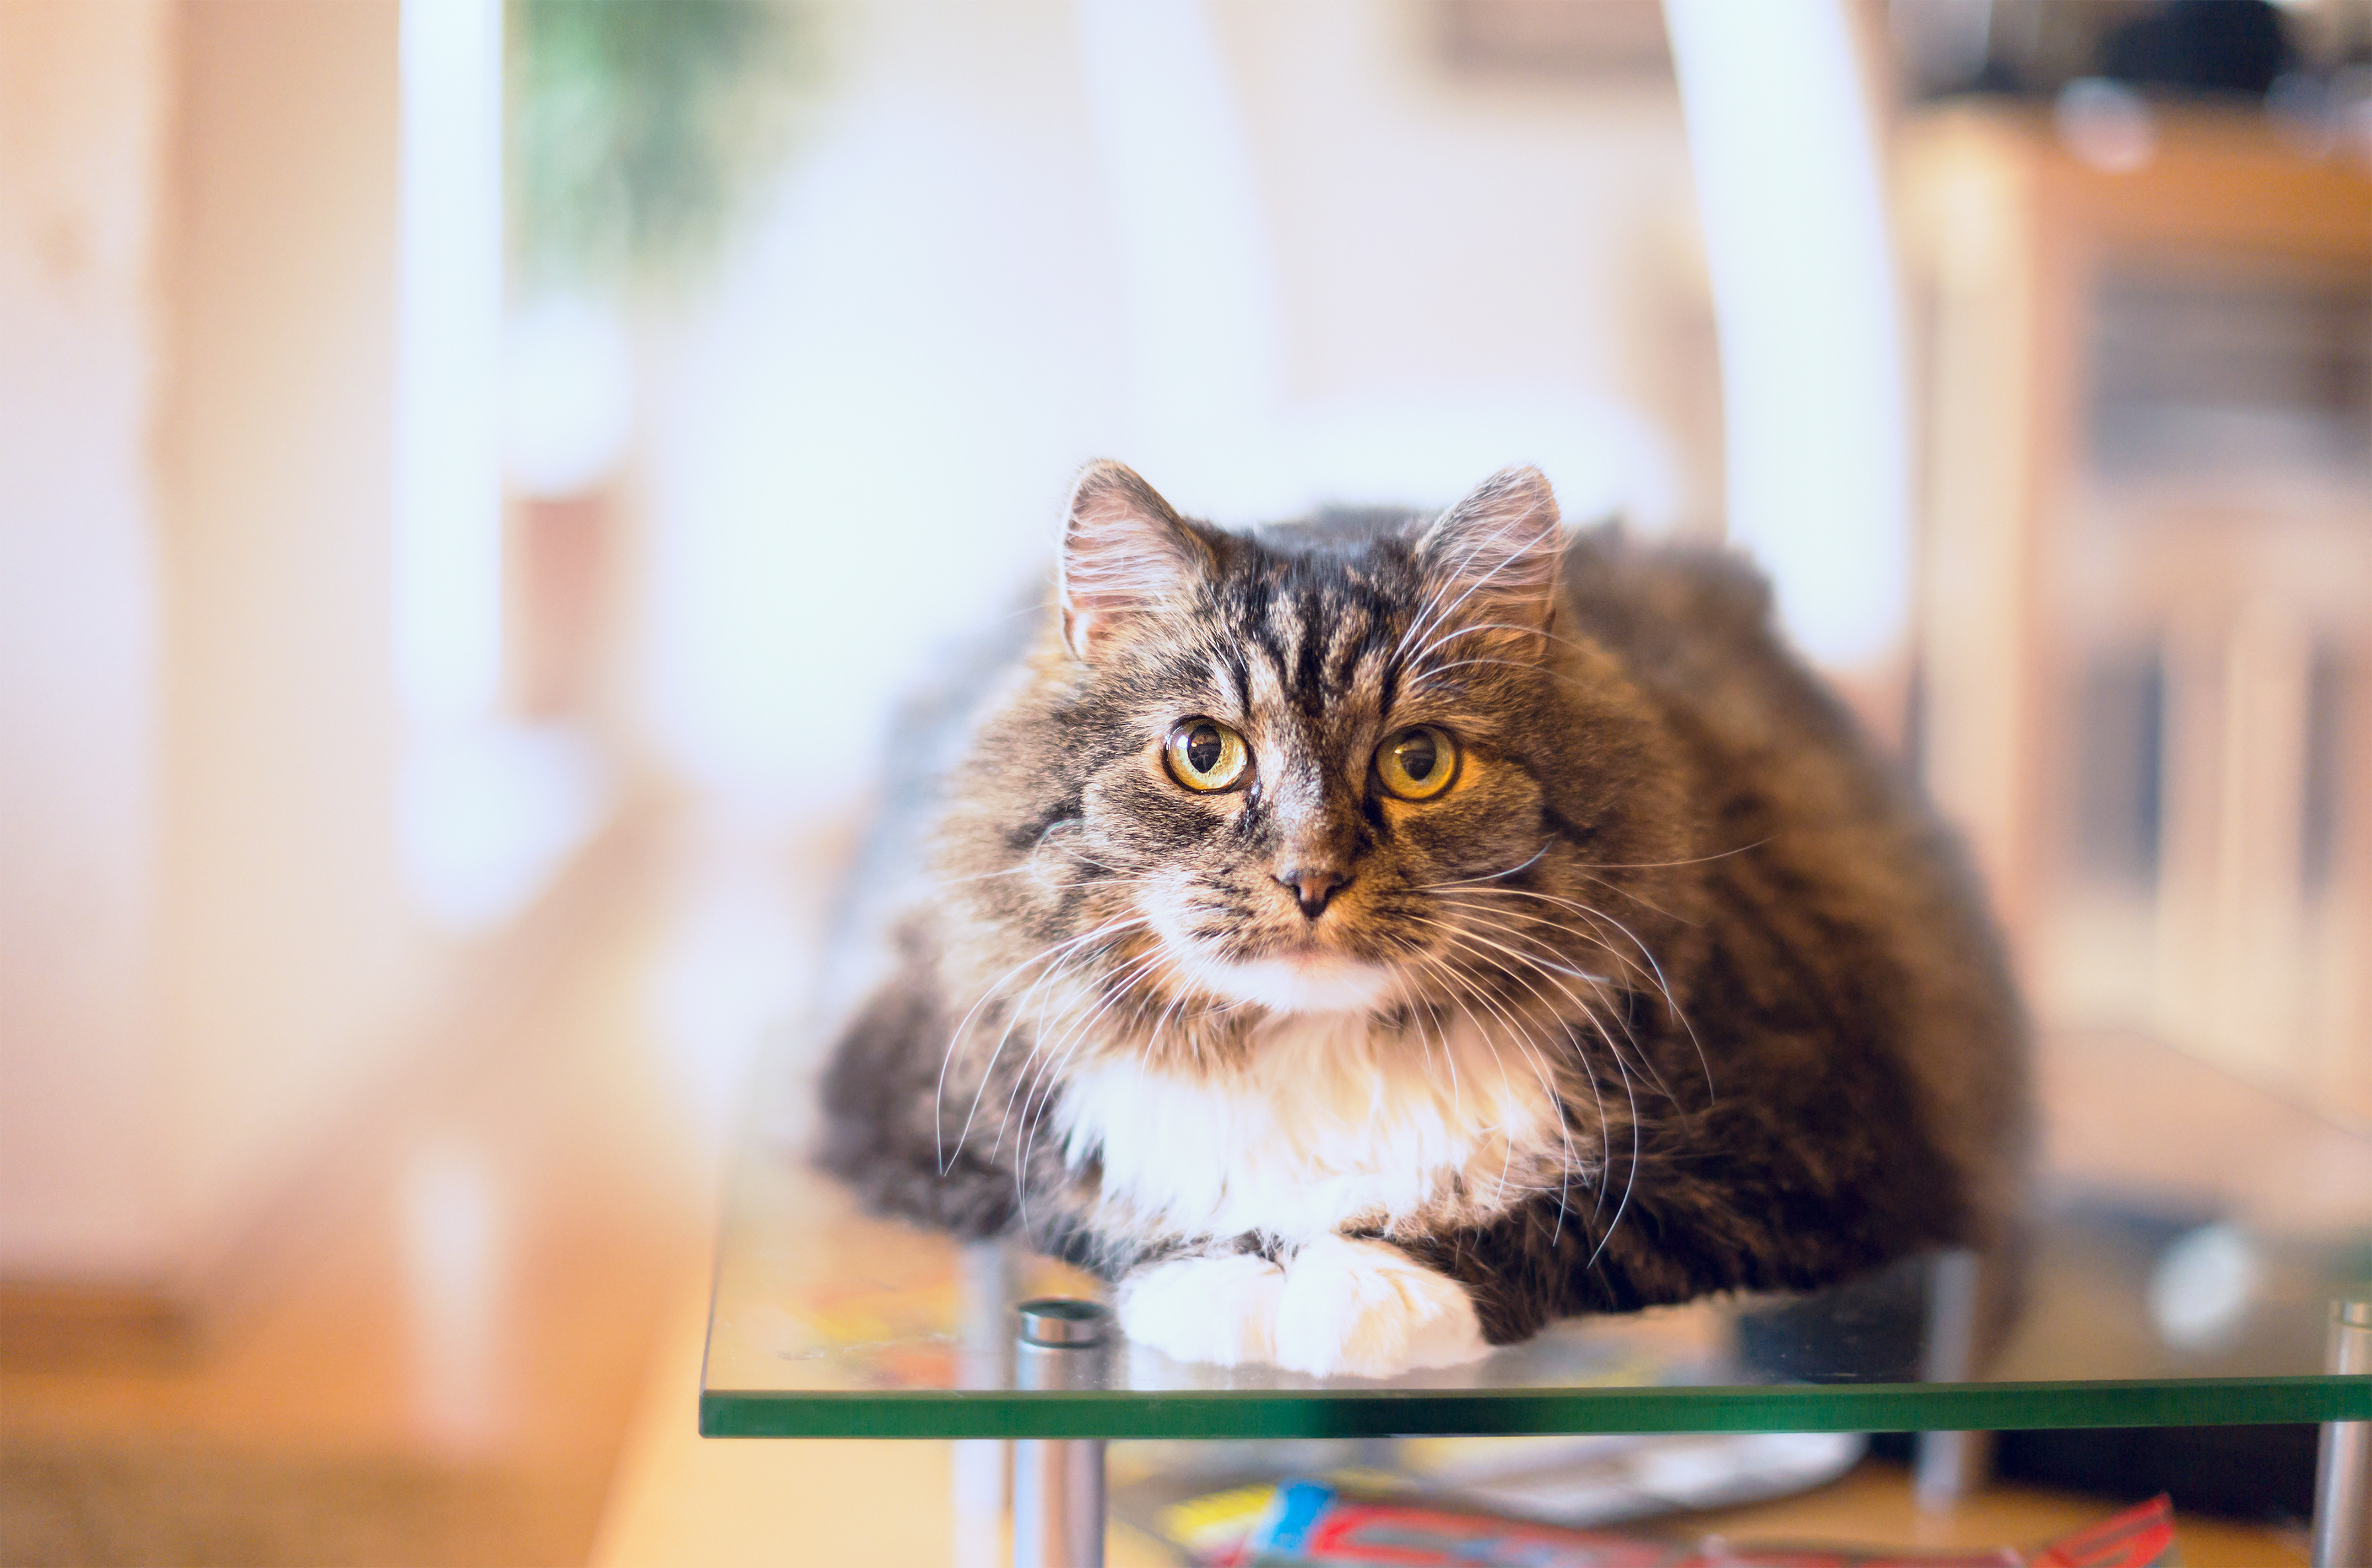 Cat sitting on glass table.